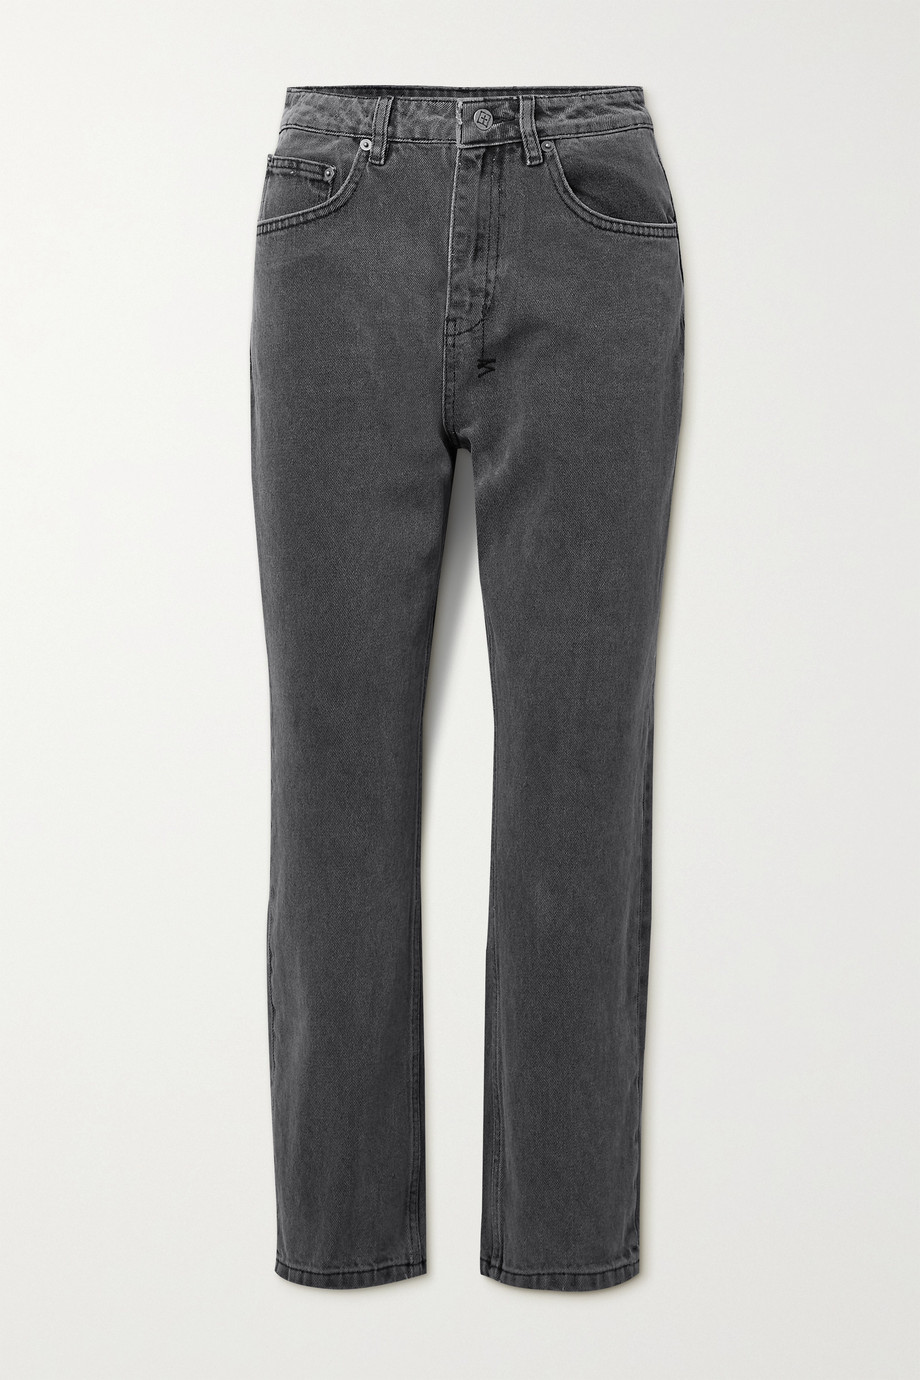 Ksubi Chlo Wasted cropped high-rise straight-leg jeans